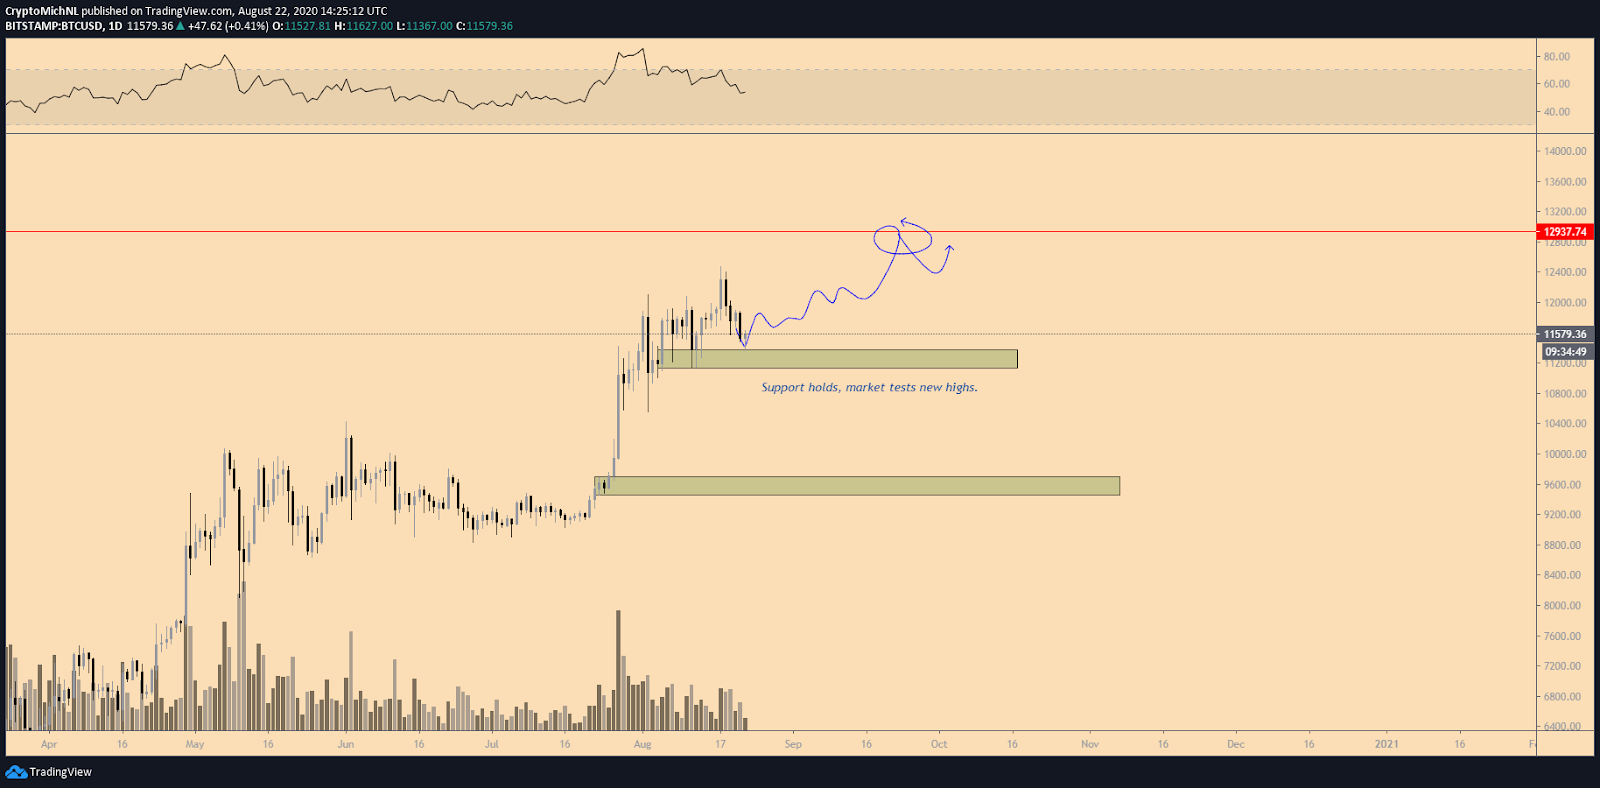 BTC/USDT bullish scenario chart. Source: TradingView